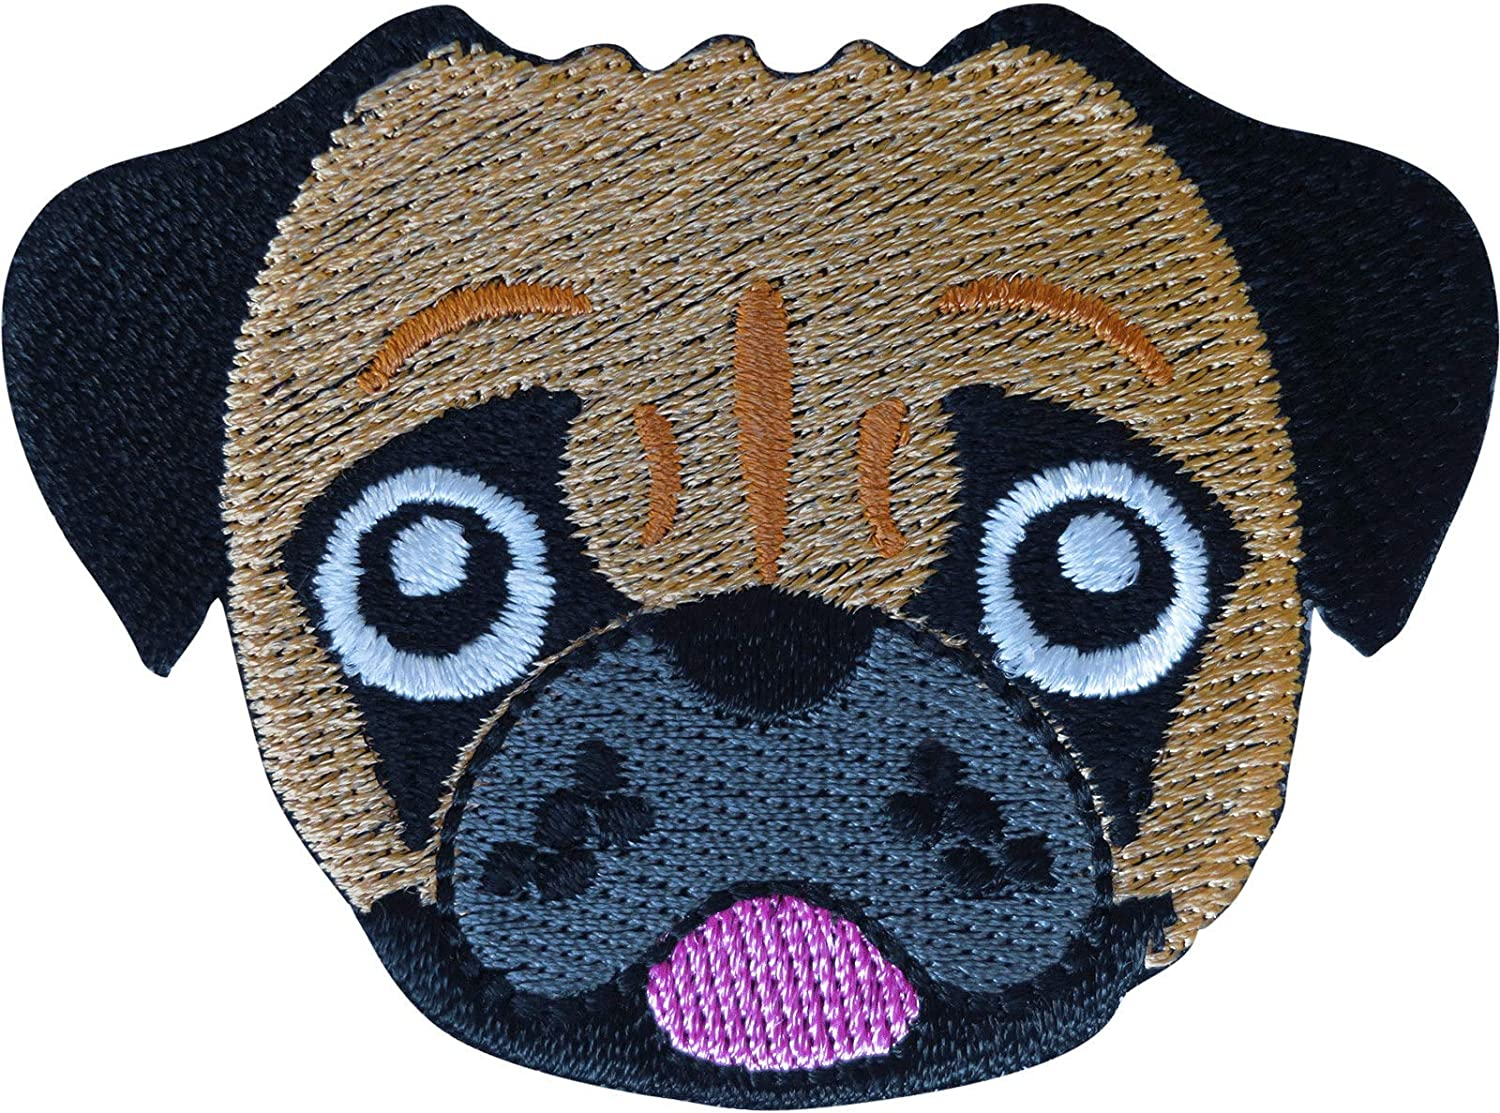 Boxer Bulldog Pug Patch Bargain Iron Sew Dog Free shipping on posting reviews Embroidered On Bag Clothes